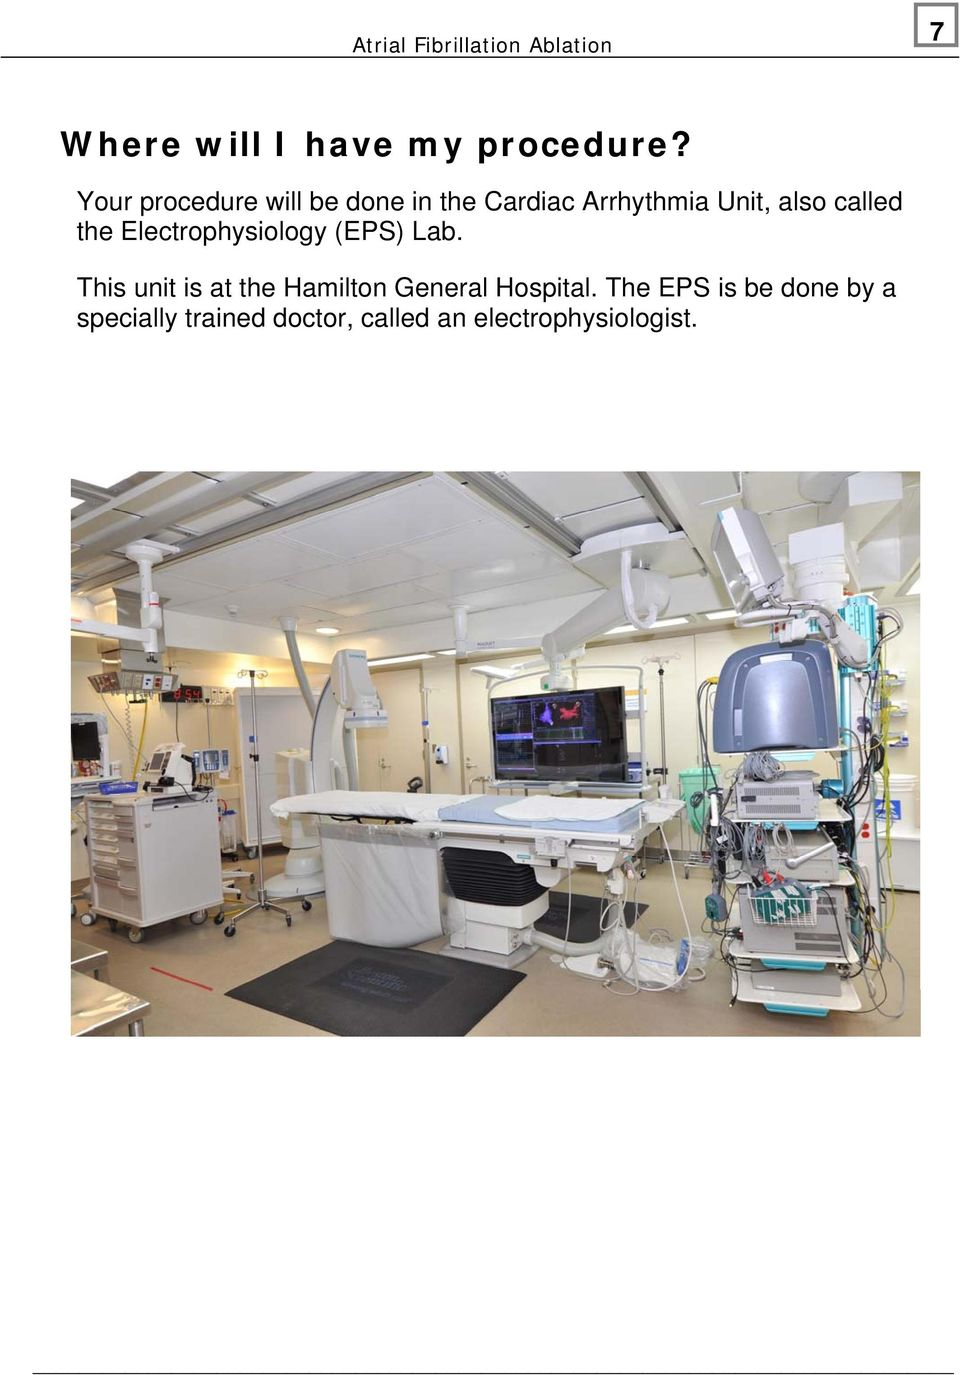 called the Electrophysiology (EPS) Lab.